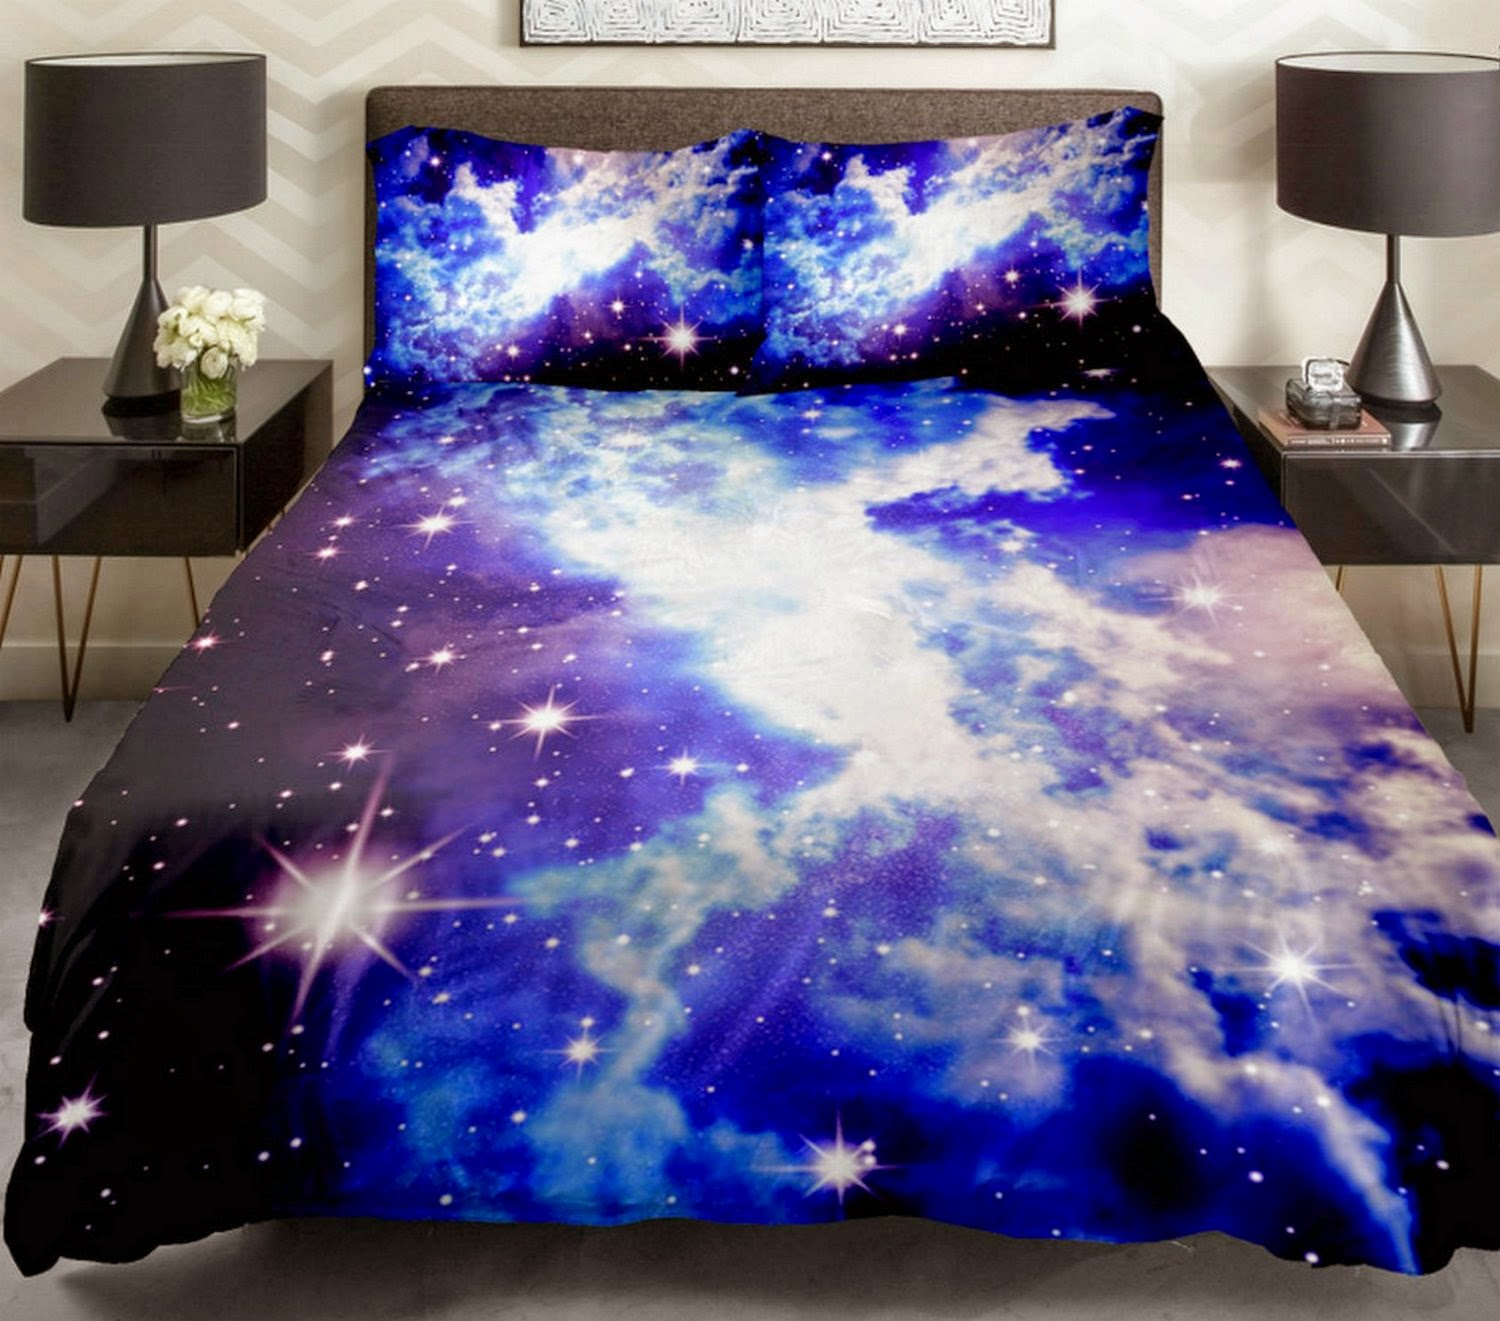 bedroom decor ideas and designs top outer space bedding thatus with outer space  themed room. Space Themed Bedroom Accessories   education photography com